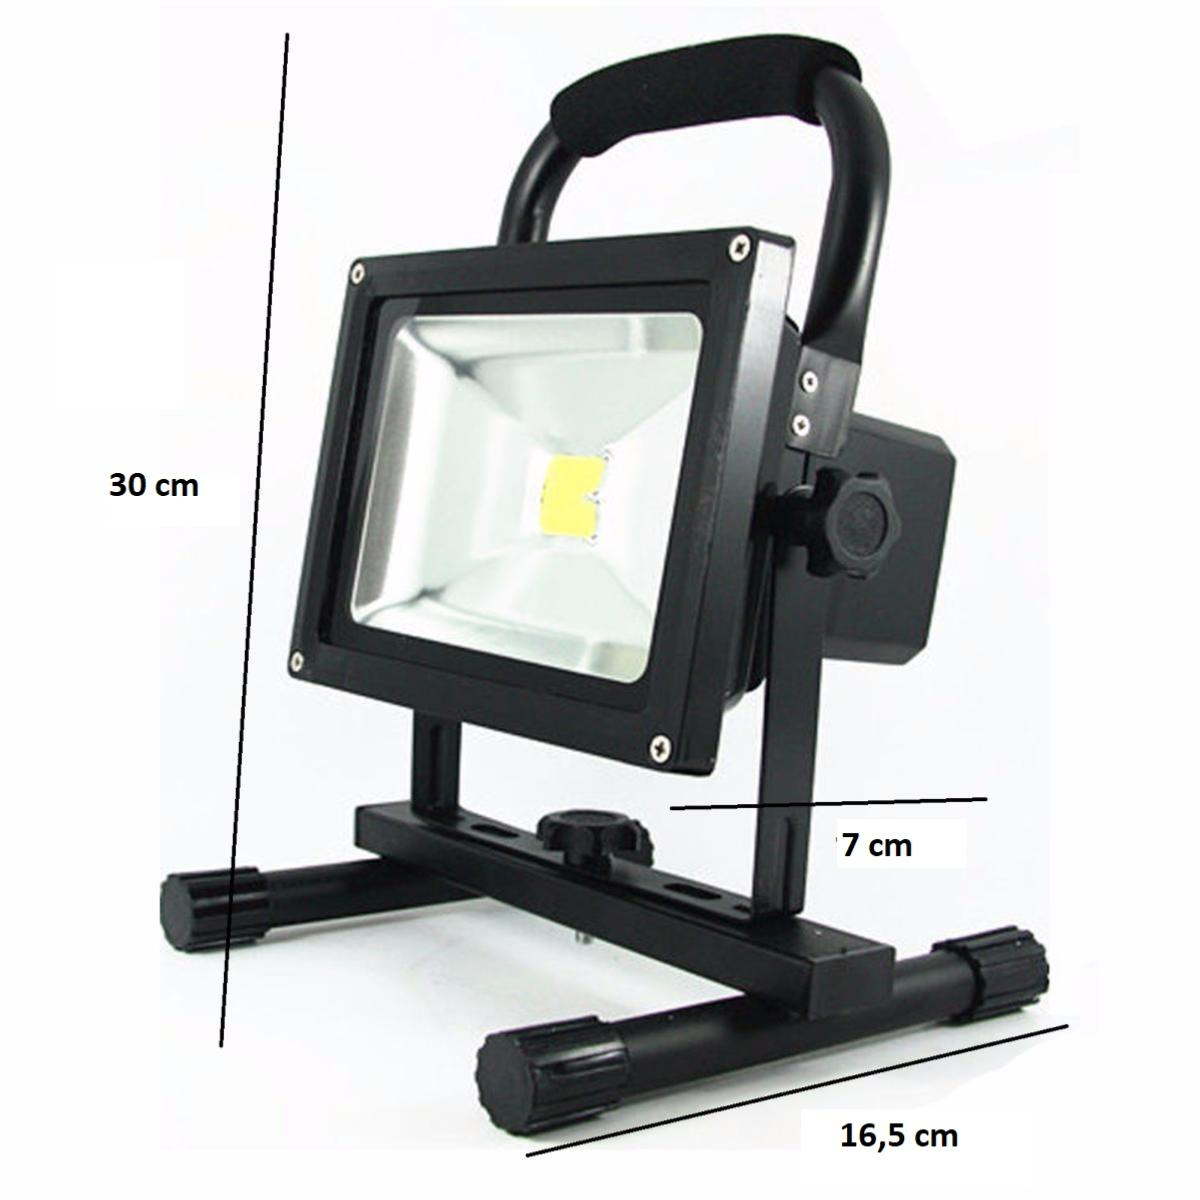 projecteur led phare 20w ip65 portable rechargeable noir. Black Bedroom Furniture Sets. Home Design Ideas